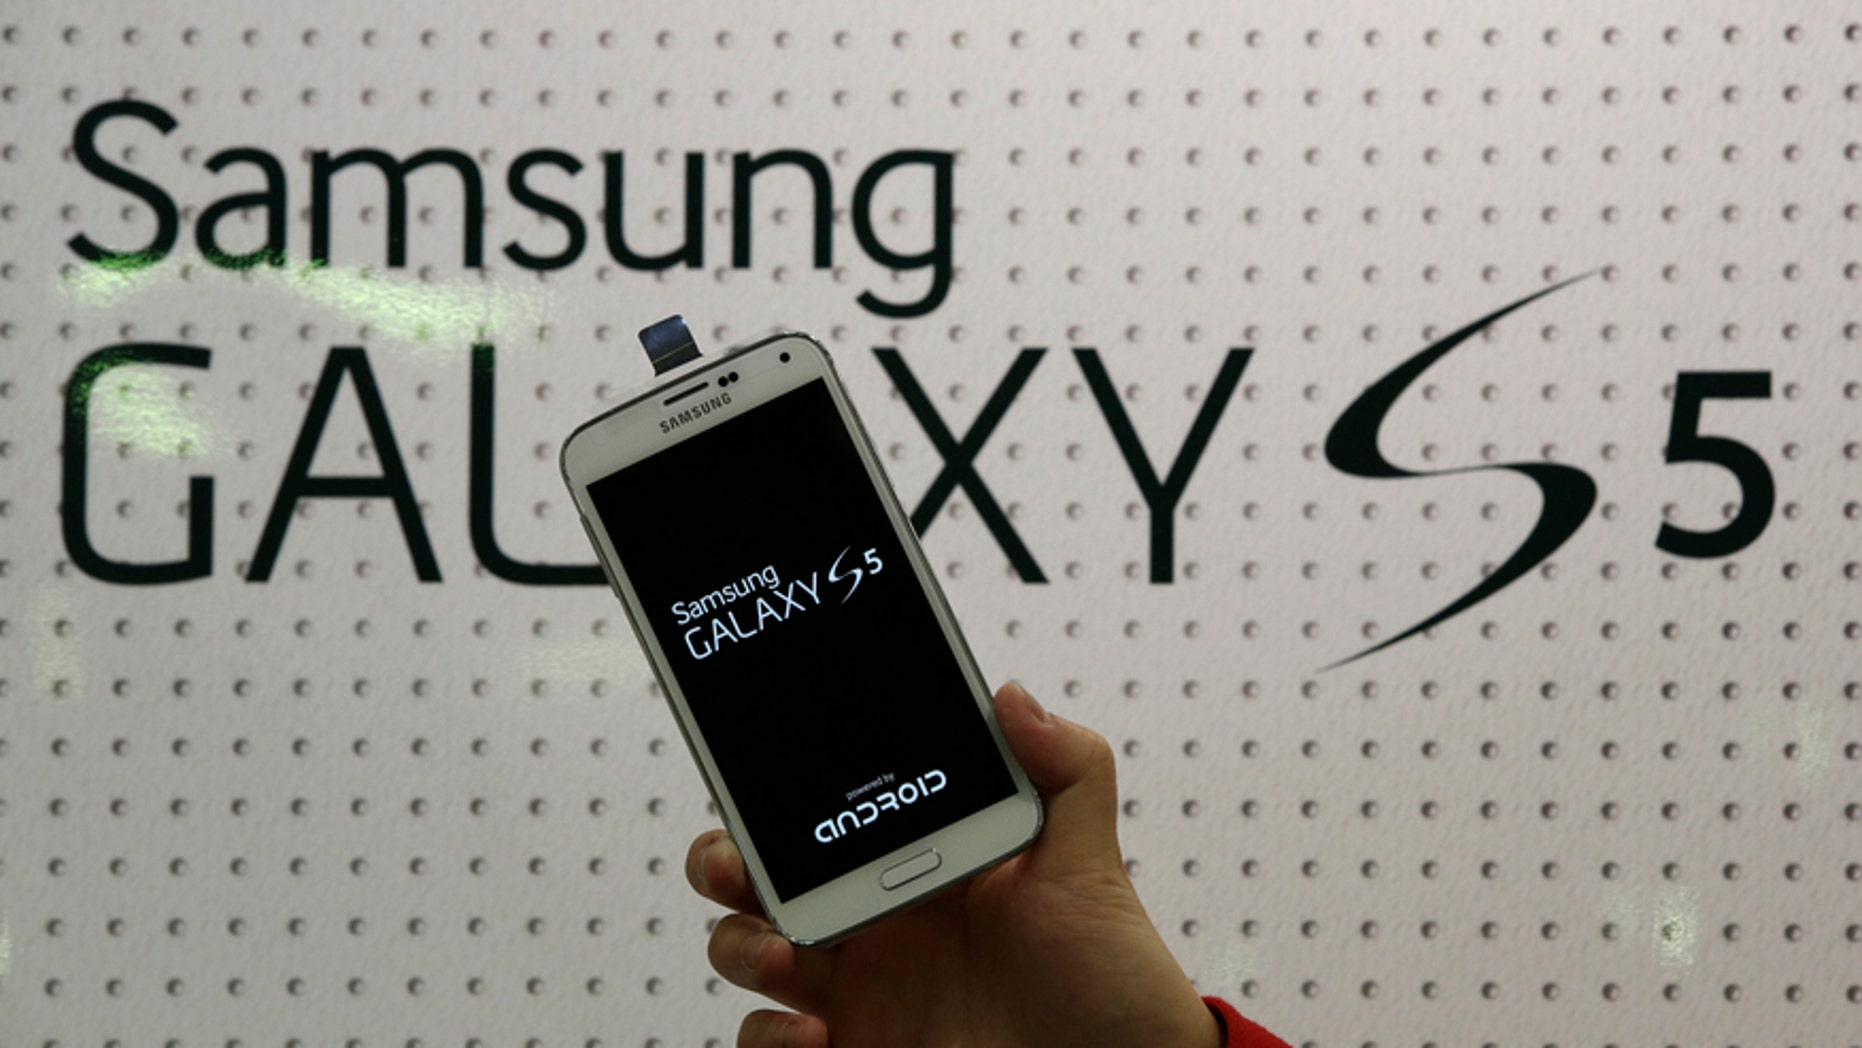 An employee shows Samsung's Galaxy S5 smartphone at a mobile phone shop in Seoul, South Korea.